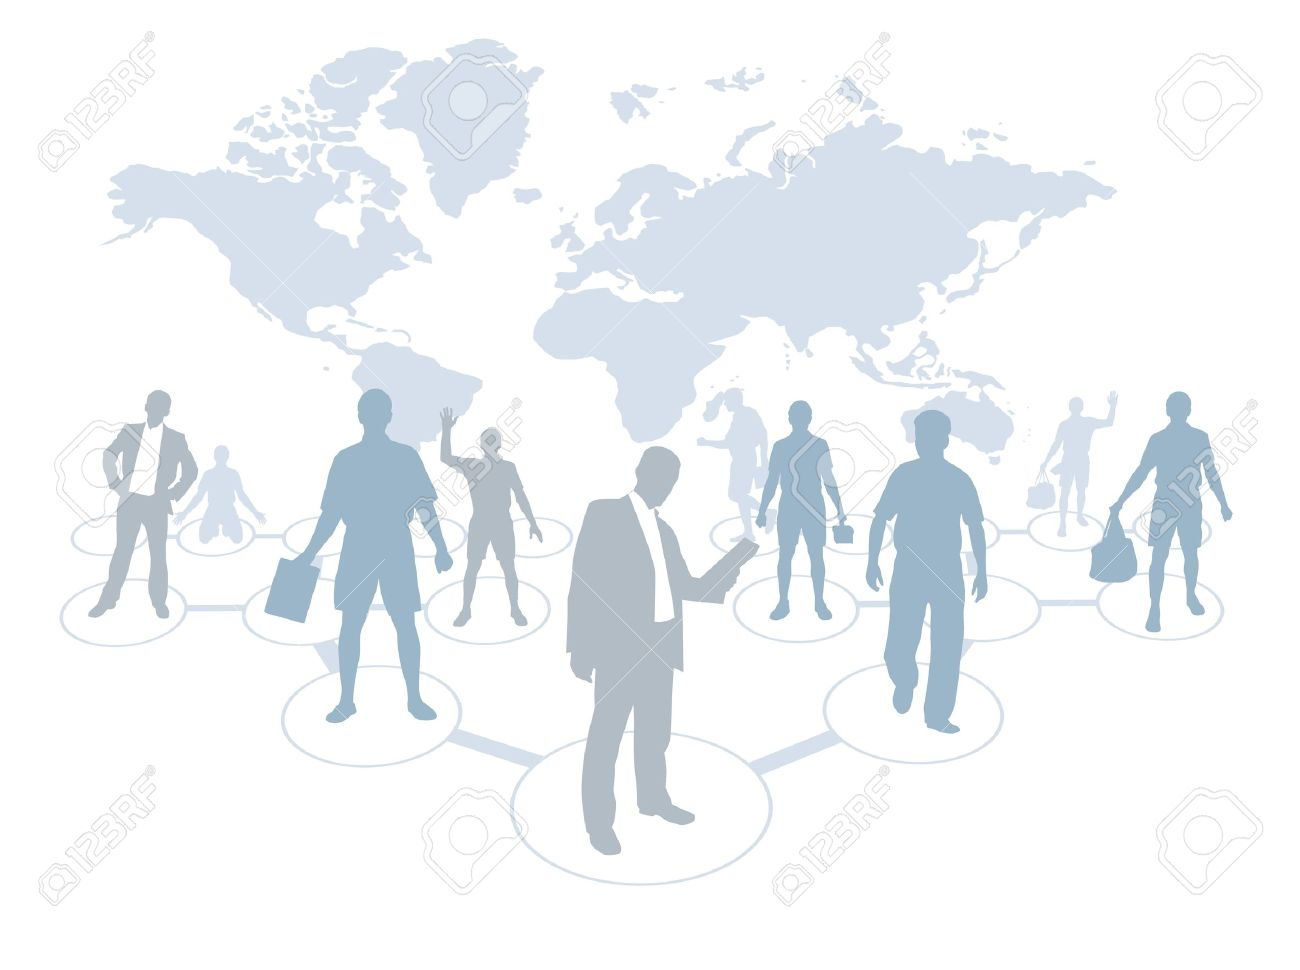 Business people with world map background royalty free cliparts business people with world map background stock vector 9744695 gumiabroncs Gallery